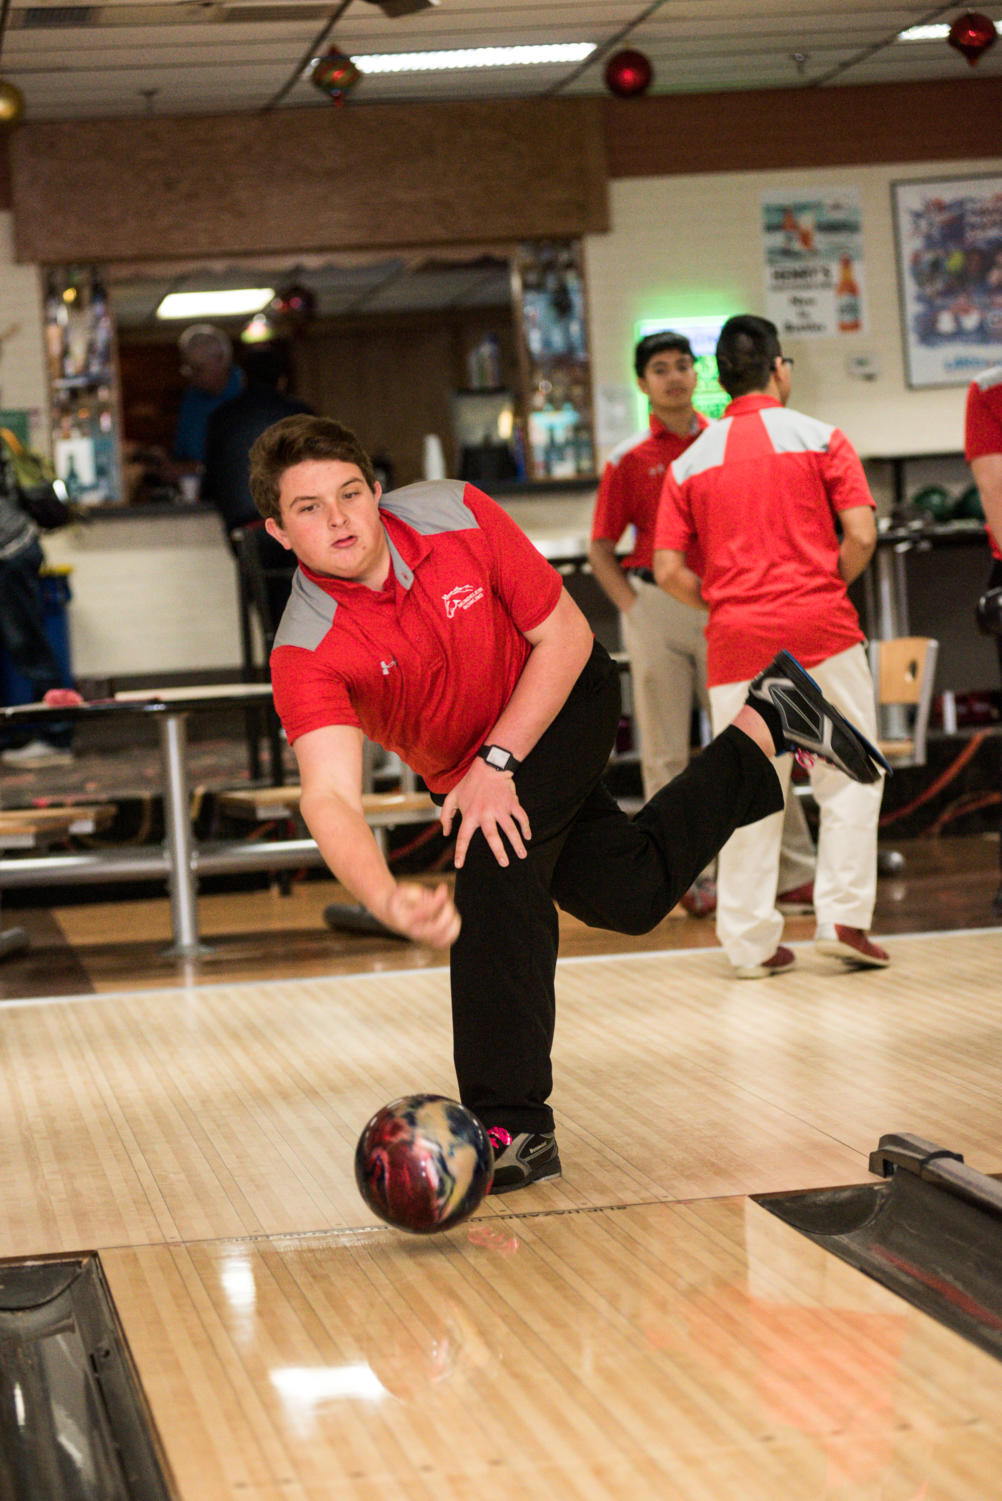 Nick Prochnow, senior, bowls at a practice on Dec. 3, 2018. Prochnow has been on the team for both years of the program's existence.